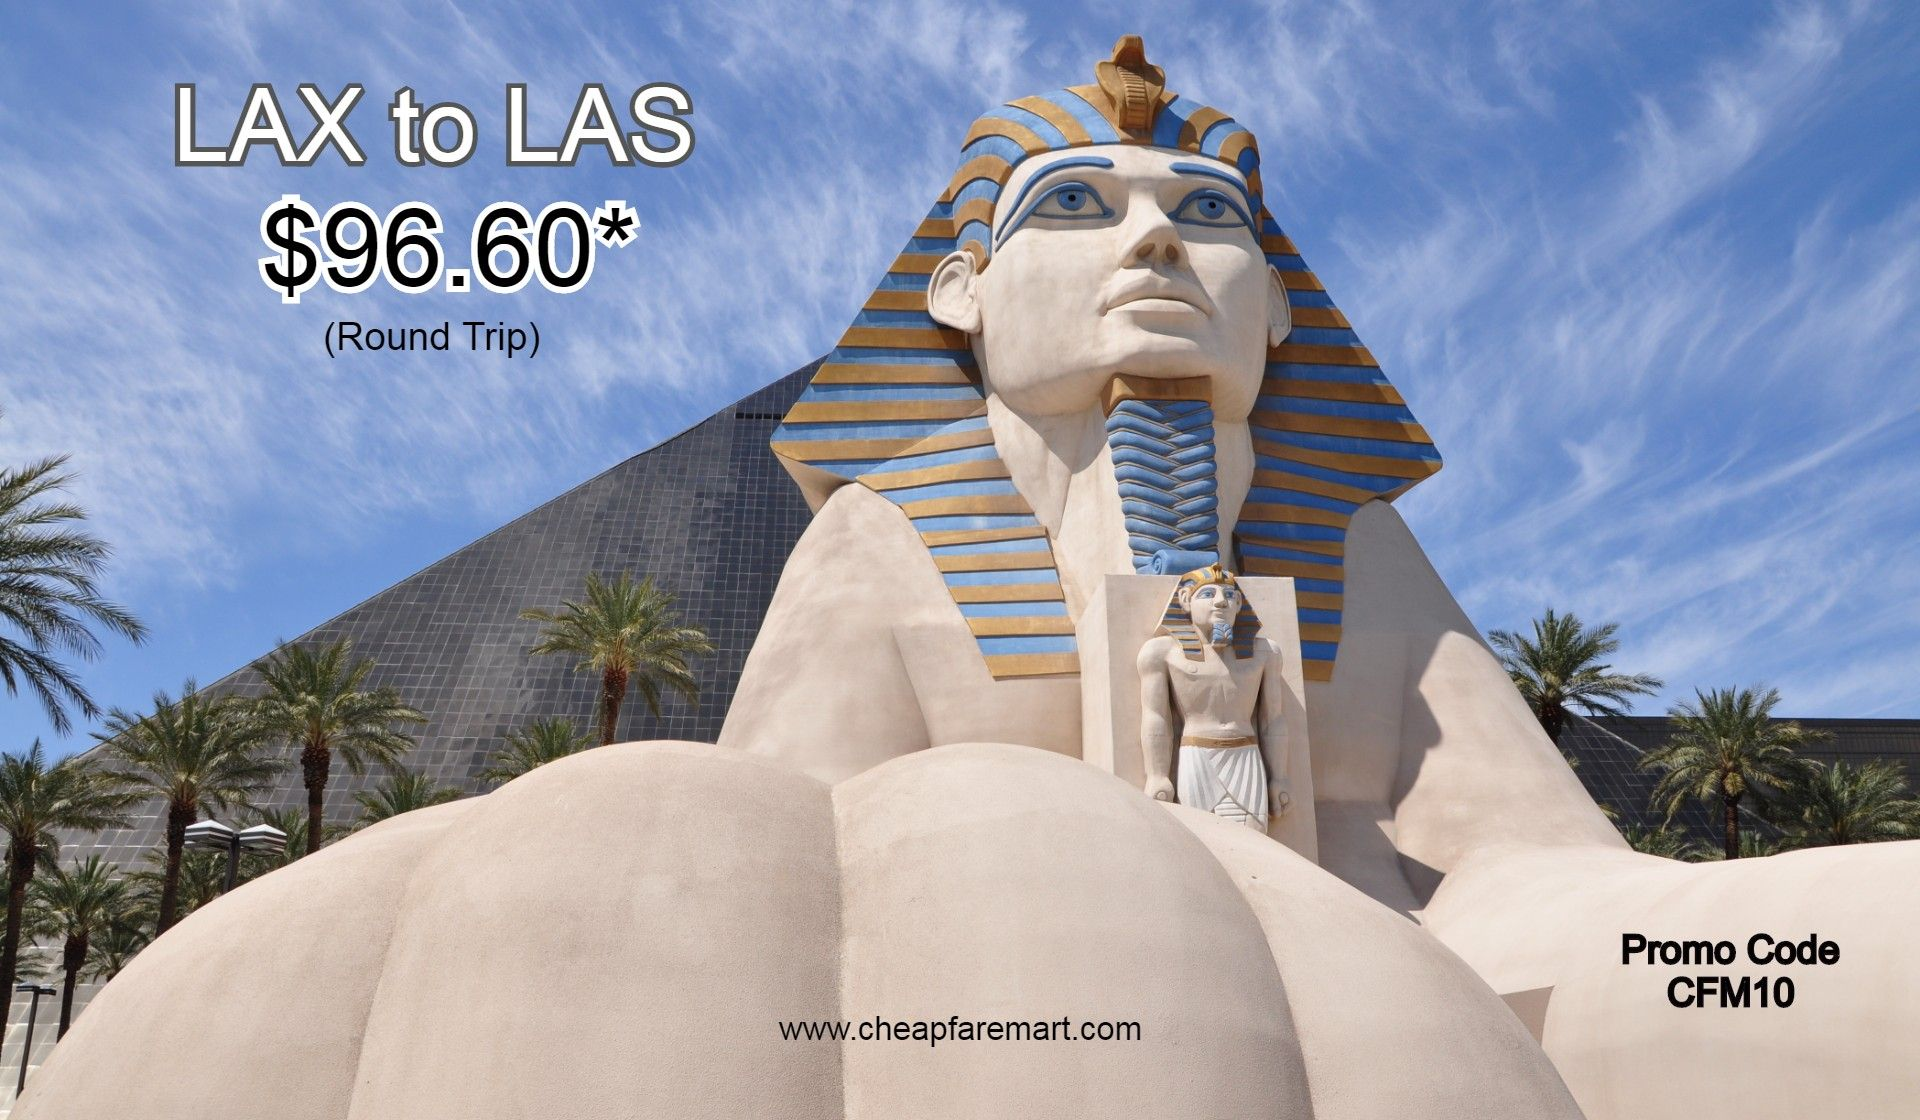 Las Vegas To Los Angeles Flight Lax To Las Flights Airfares From 61 15 Cheap Flights Las Vegas Trip Las Vegas Travel Guide